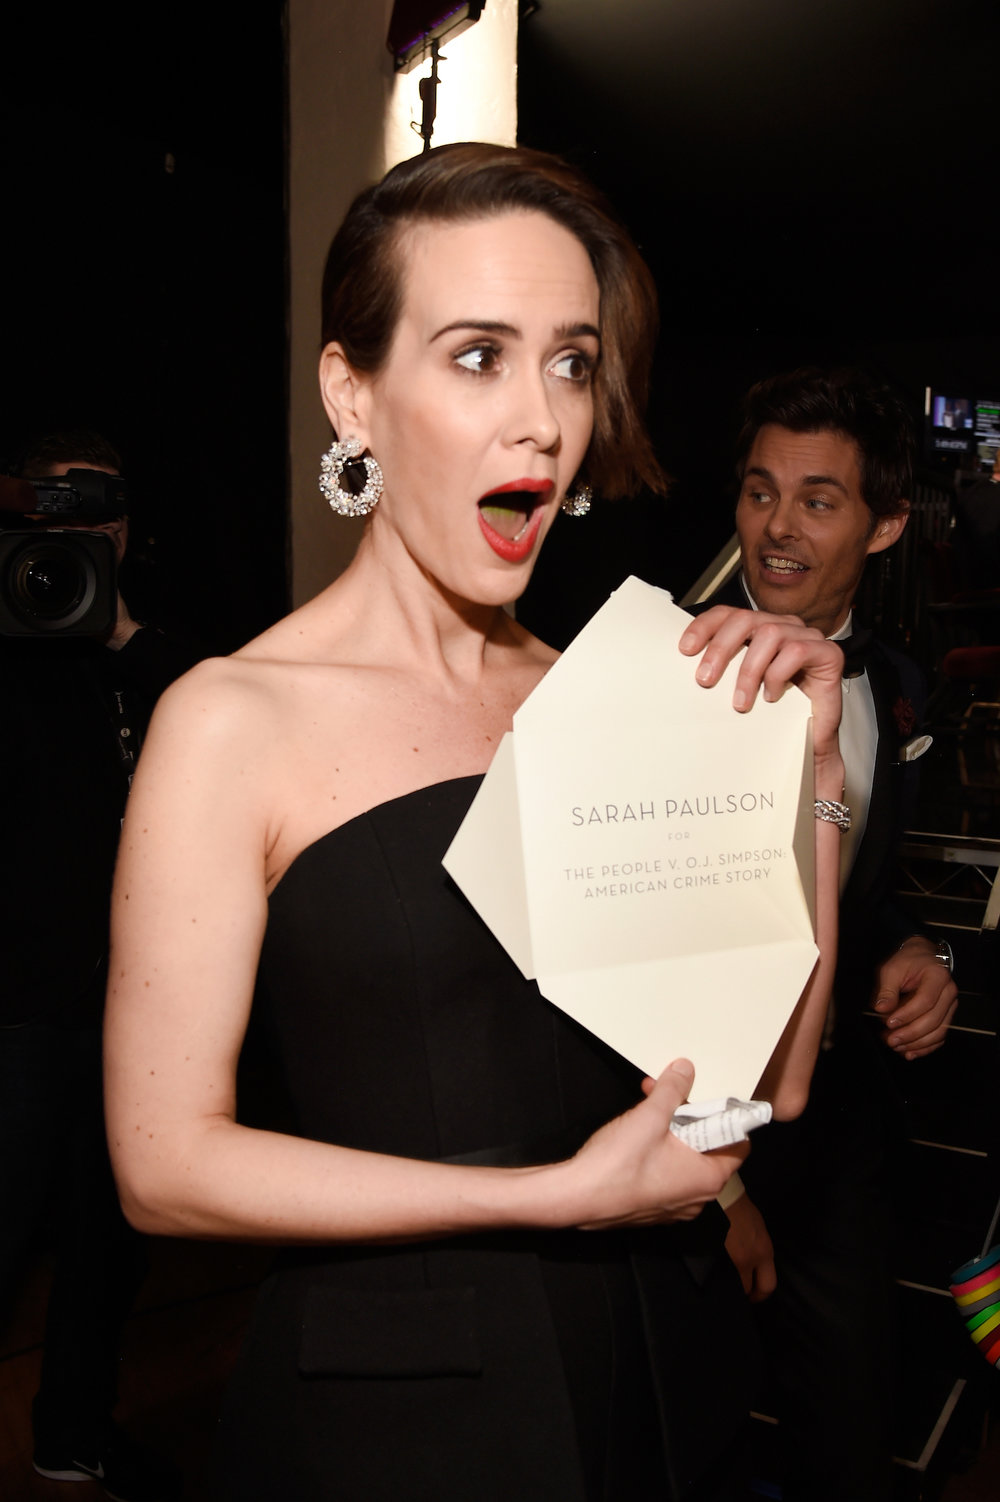 LOS ANGELES, CA - JANUARY 29: Actor Sarah Paulson (L) attends The 23rd Annual Screen Actors Guild Awards at The Shrine Auditorium on January 29, 2017 in Los Angeles, California. 26592_011  (Photo by Kevin Mazur/Getty Images for TNT) *** Local Caption *** Sarah Paulson